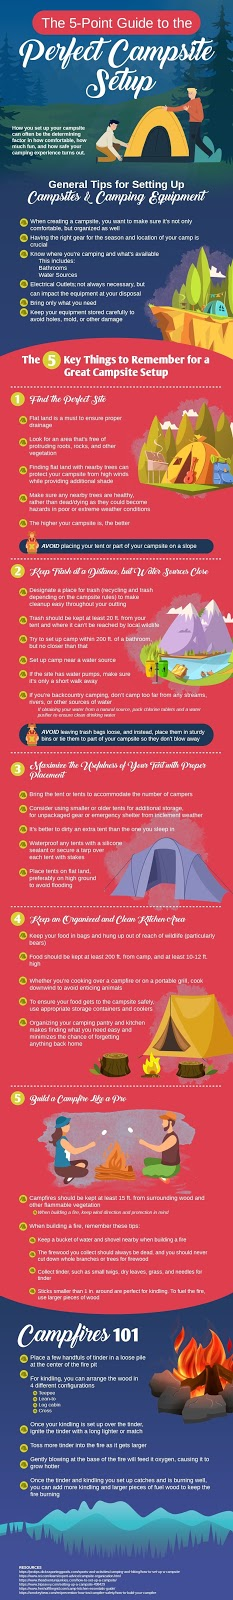 The 5-Point Guide to the Perfect Campsite Setup #infographic